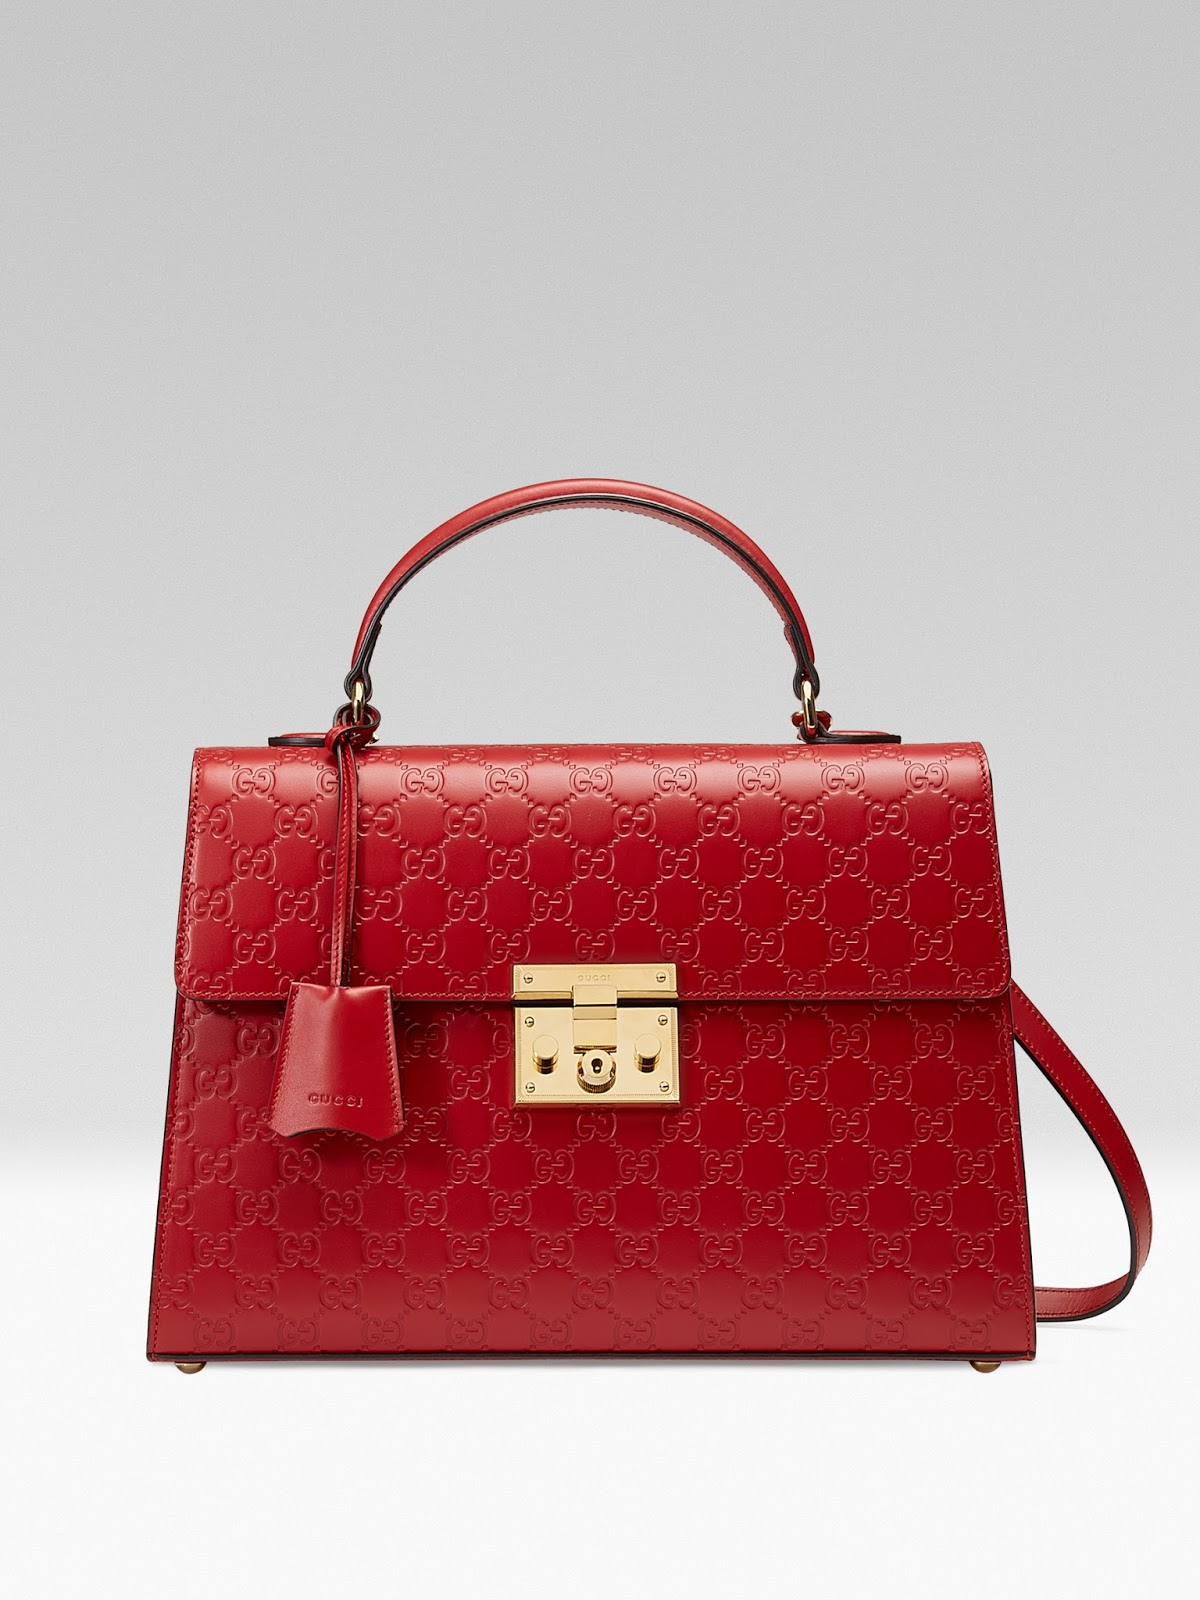 Gucci's Signature Leather Collection